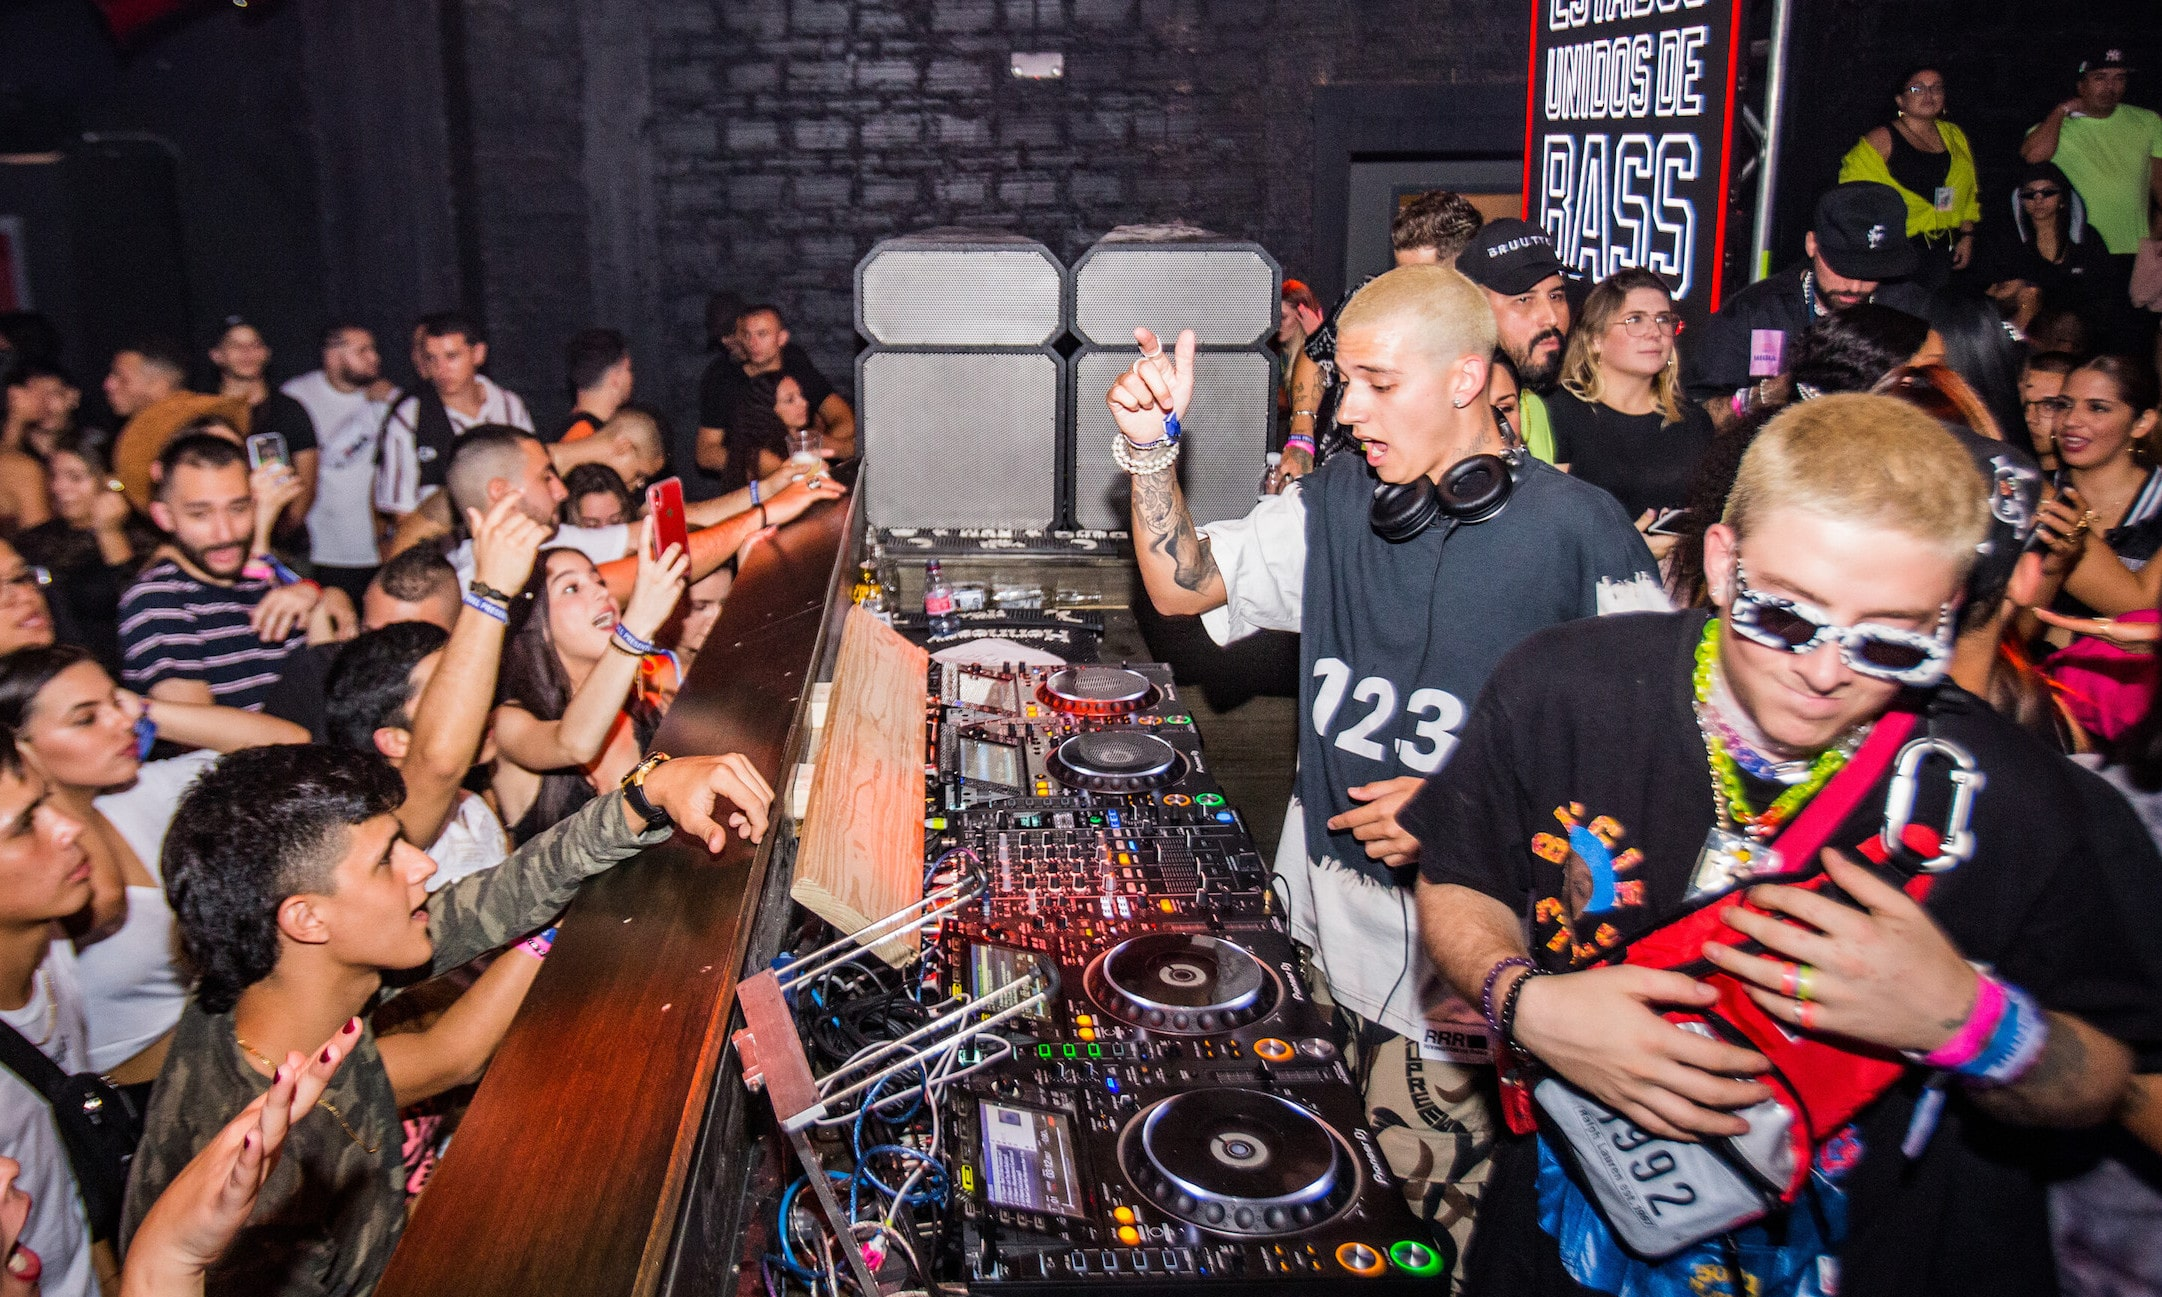 Estados Unidos De Bass Brought Urbano Artists From the World Over for One Night in Miami